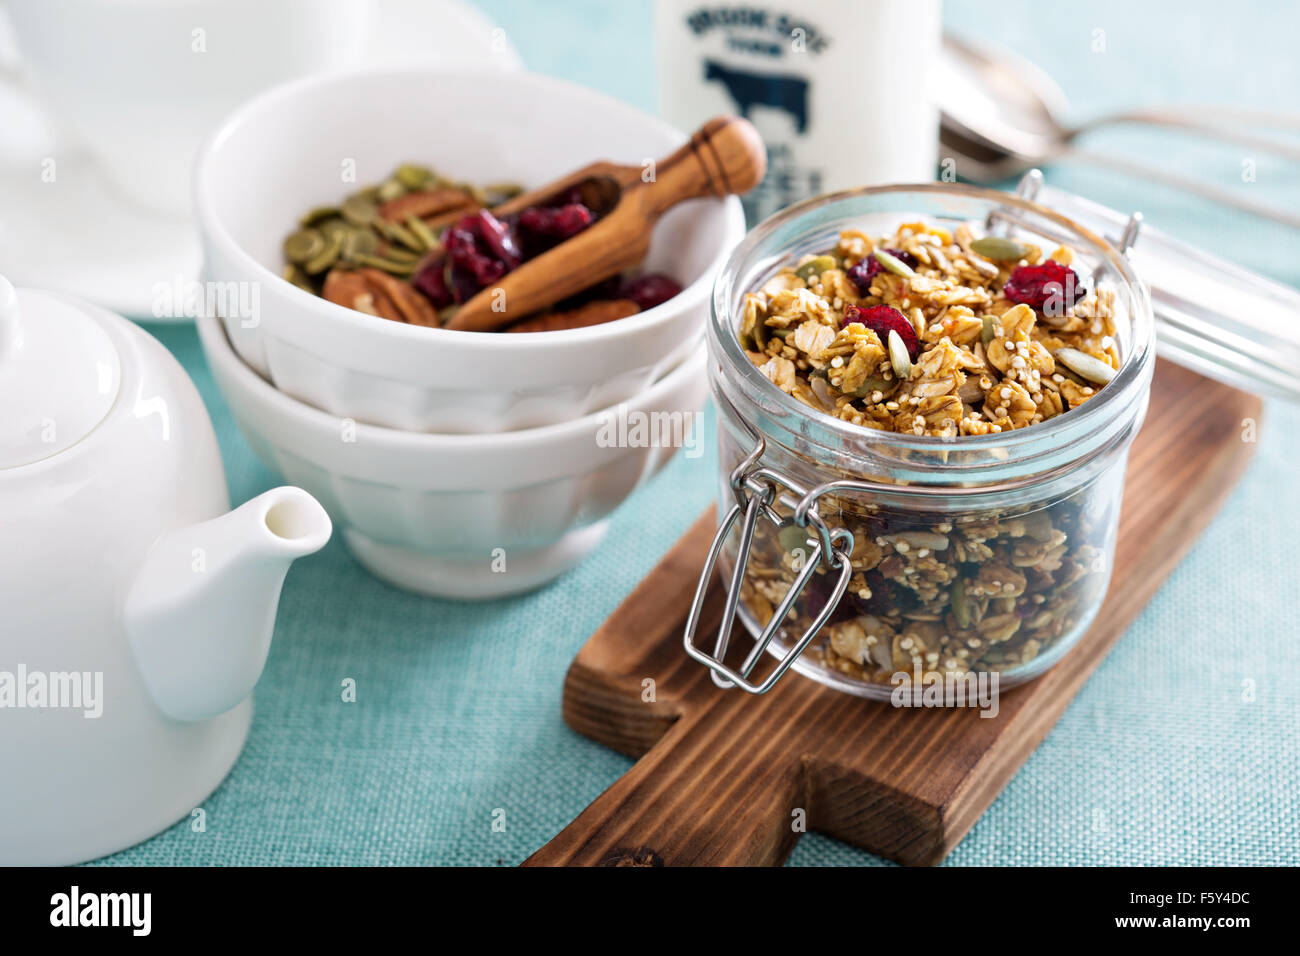 Homemade granola with quinoa and dried cranberry - Stock Image